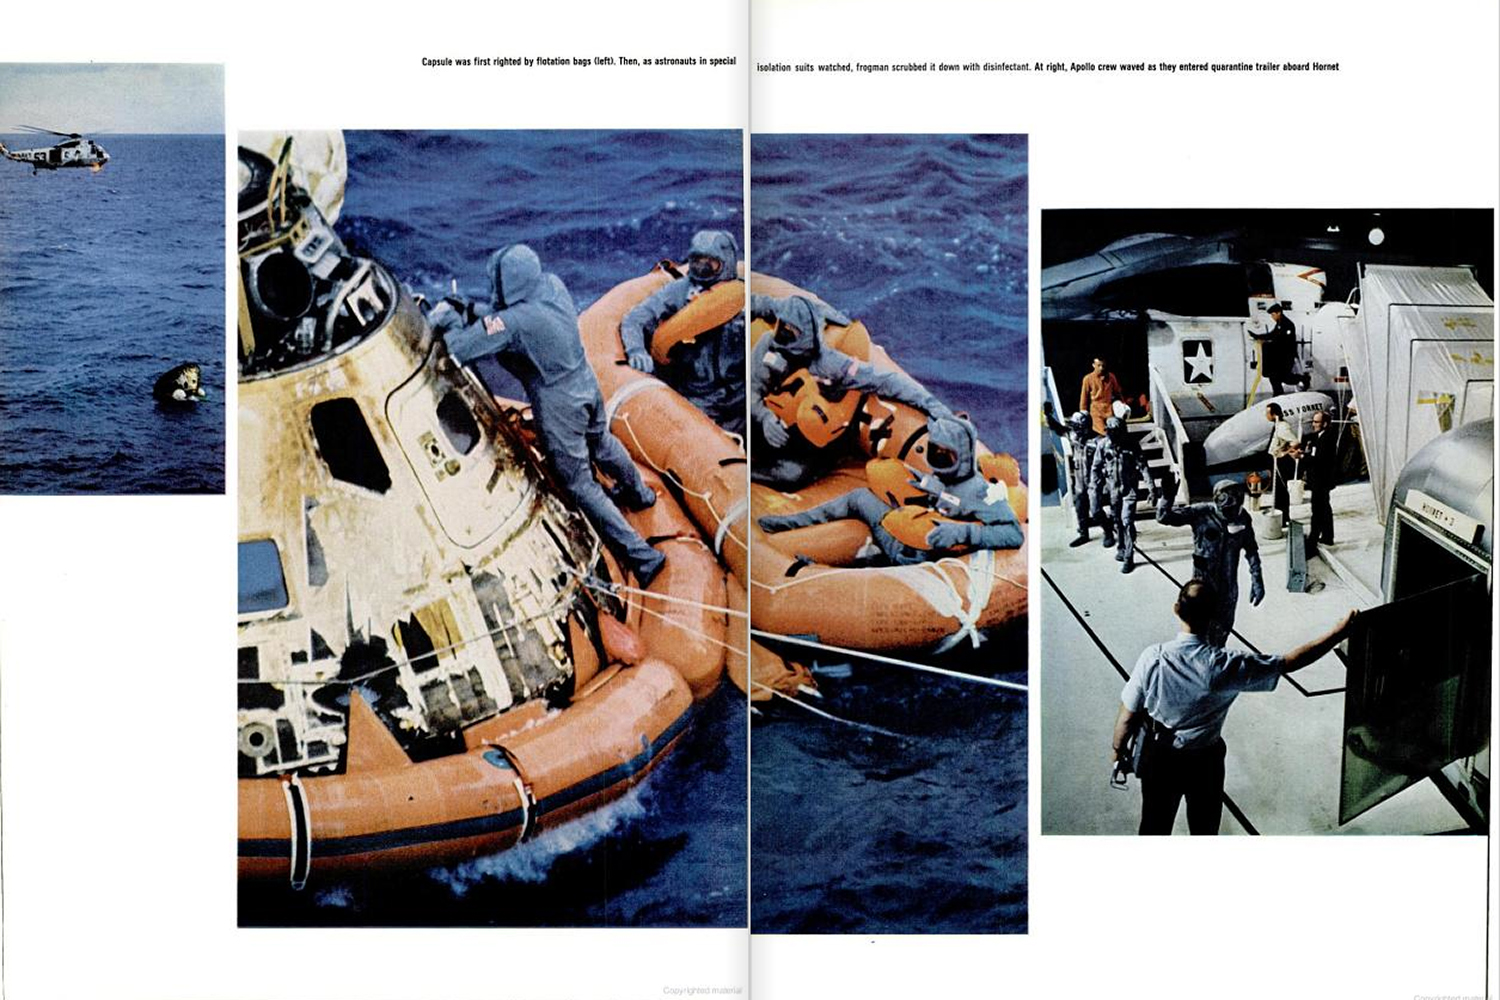 "<b>Life magazine Special Edition, August 11, 1969.</b> ""The capsule was first righted by floatation bags. Then as astronauts in special insulation suits watched, frogmen scrubbed it down with disinfectant. (right). Apollo crew waved as they entered quarantine aboard [the recovery ship] the <em>USS Hornet</em> ..."""